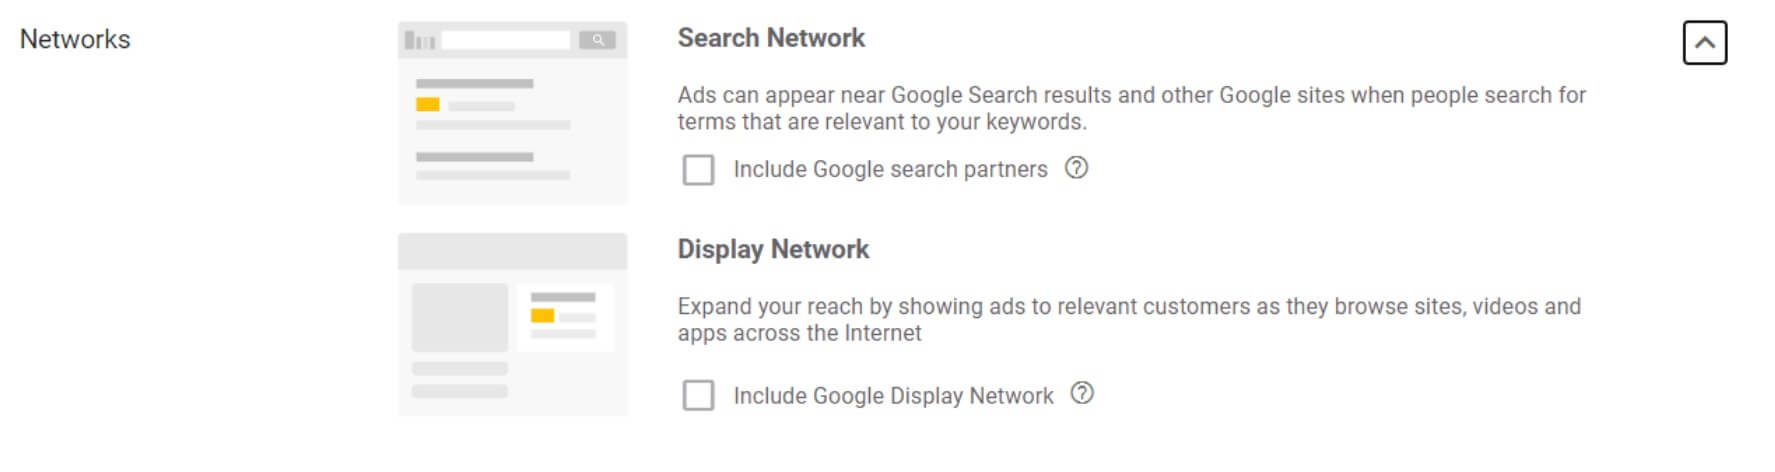 search network settings